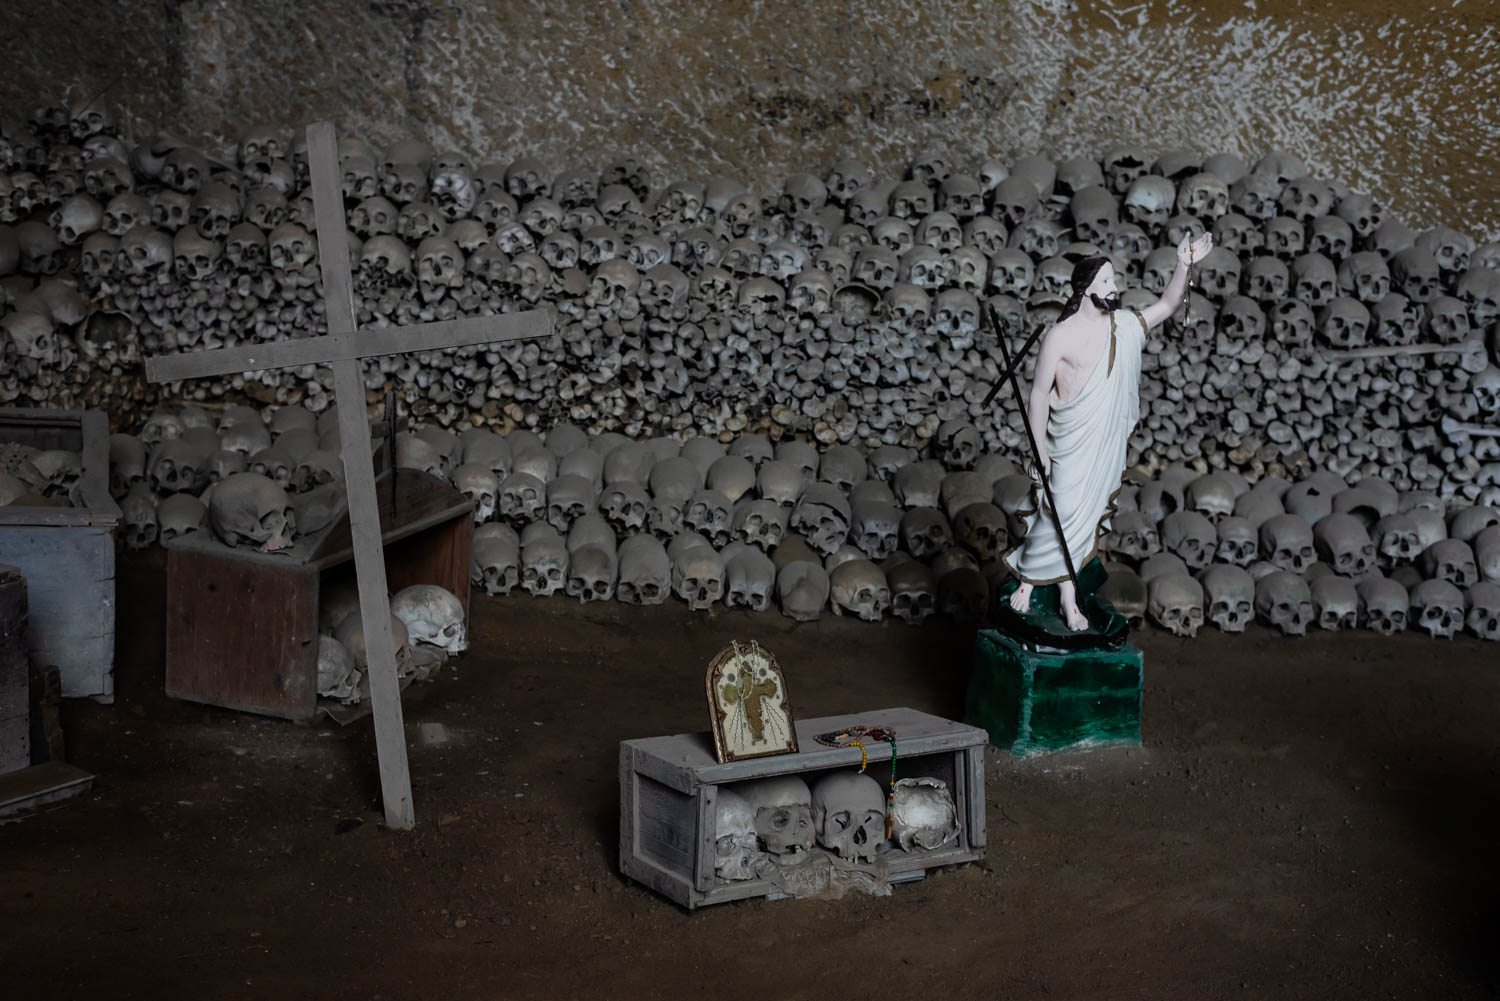 """In 1872 Don Gaetano Barbati, a local priest, and the community members cleaned and rearranged the huge number of skulls and bones and put them in order throughout the various spaces in the cavity. Since then, there has been a very strong devotion for these unidentified remains. Skulls were put in wooden boxes or into special glass because the devotees """"(…) identified in them the souls of the purgatory that needed special care and attention"""". In exchange for this care the skulls are asked to fulfill wishes and to predict the future.  Since its excavation the quarry has converted into a cultural space. Though it is said that mainly people from lower classes were put there, without being named or labelled, all skeletons look similar and are given new meanings through local community members.  Sources:  A. Scotto di Santolo et al. 2013 """"The Fontanelle Cemetery: between legend and reality.""""  Sophia Seymour 2018 """"Naples' Fontanelle cemetery: skulls and silence beneath the busy city streets."""""""